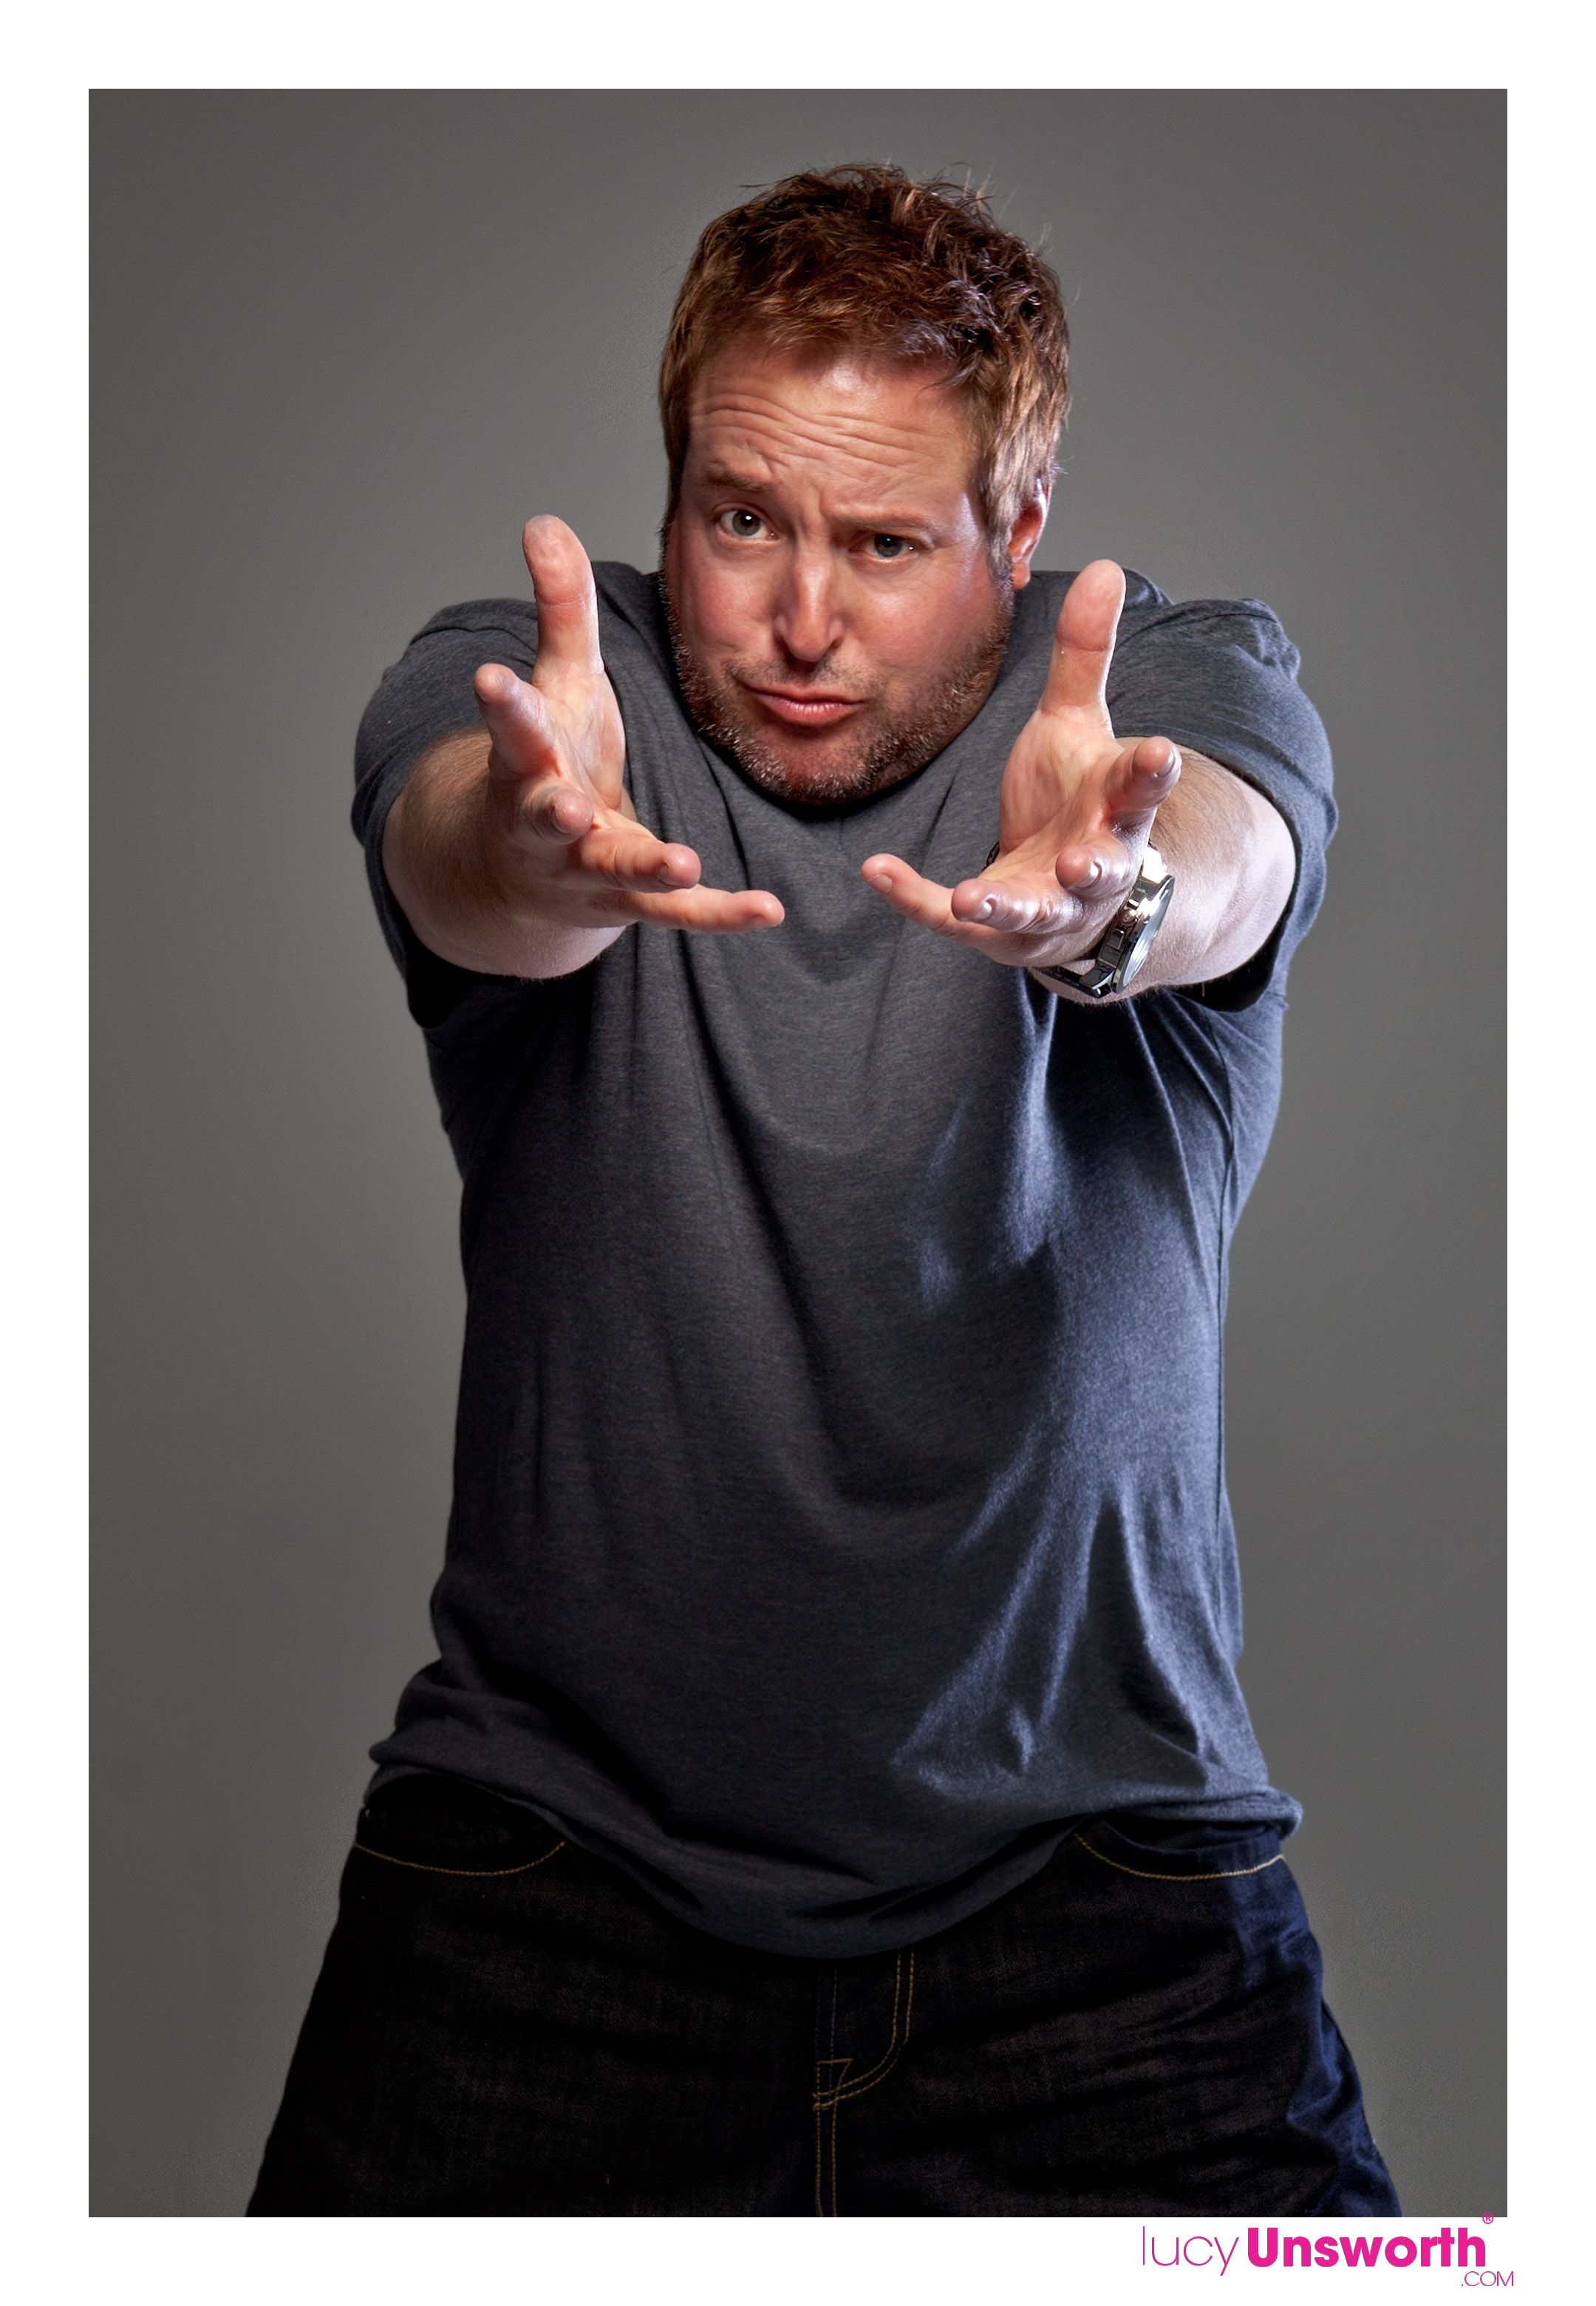 Gary Valentine, Kevin Jamesu0027 Big Brother Plays In The King Of QUEENS Tv  Show.